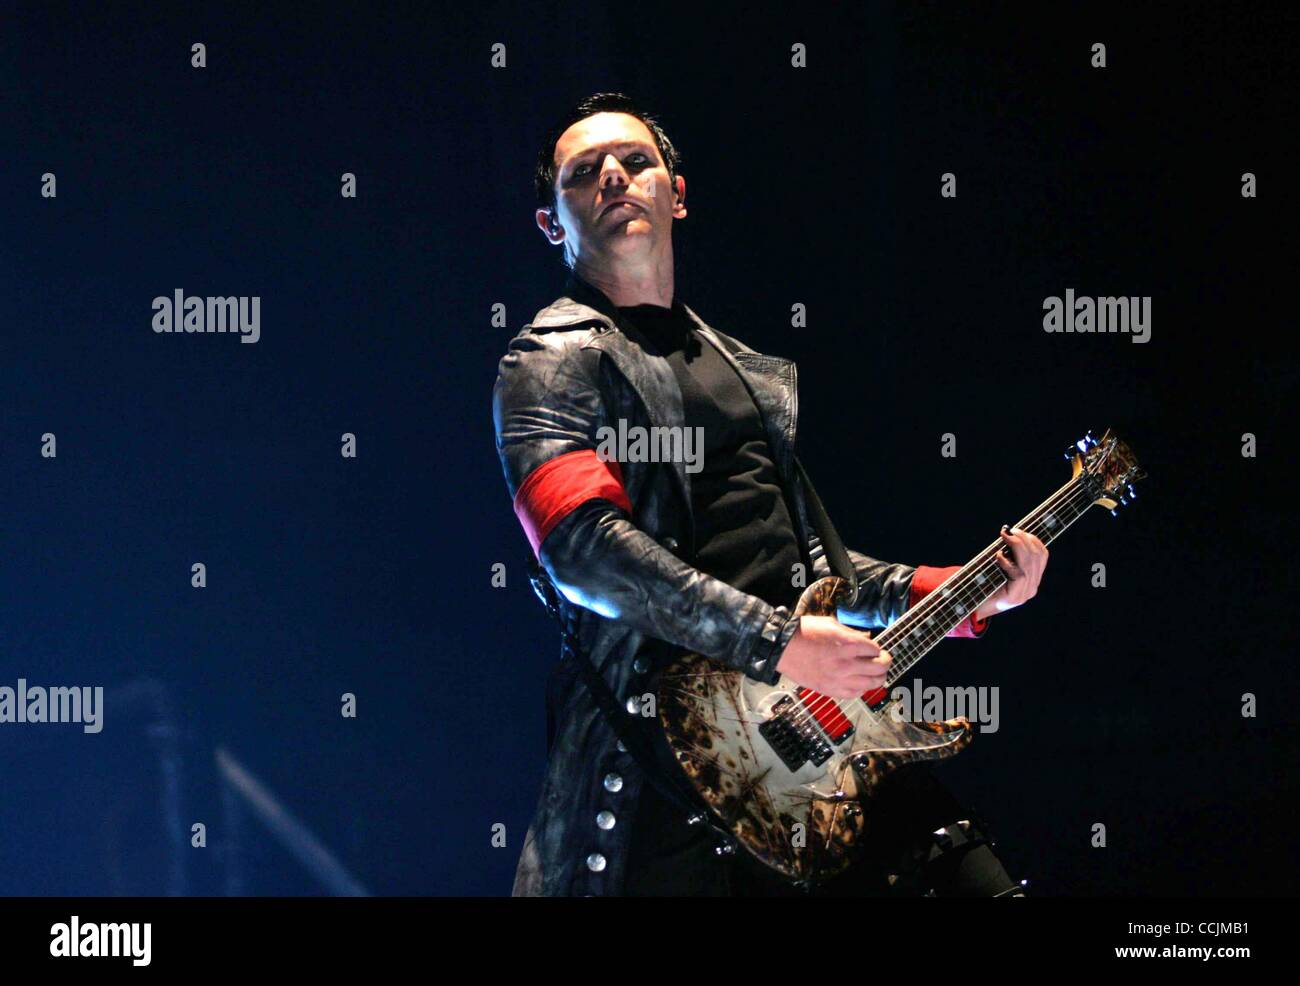 dec 11 2010 new york new york u s rammstein performs in stock photo 42207733 alamy. Black Bedroom Furniture Sets. Home Design Ideas